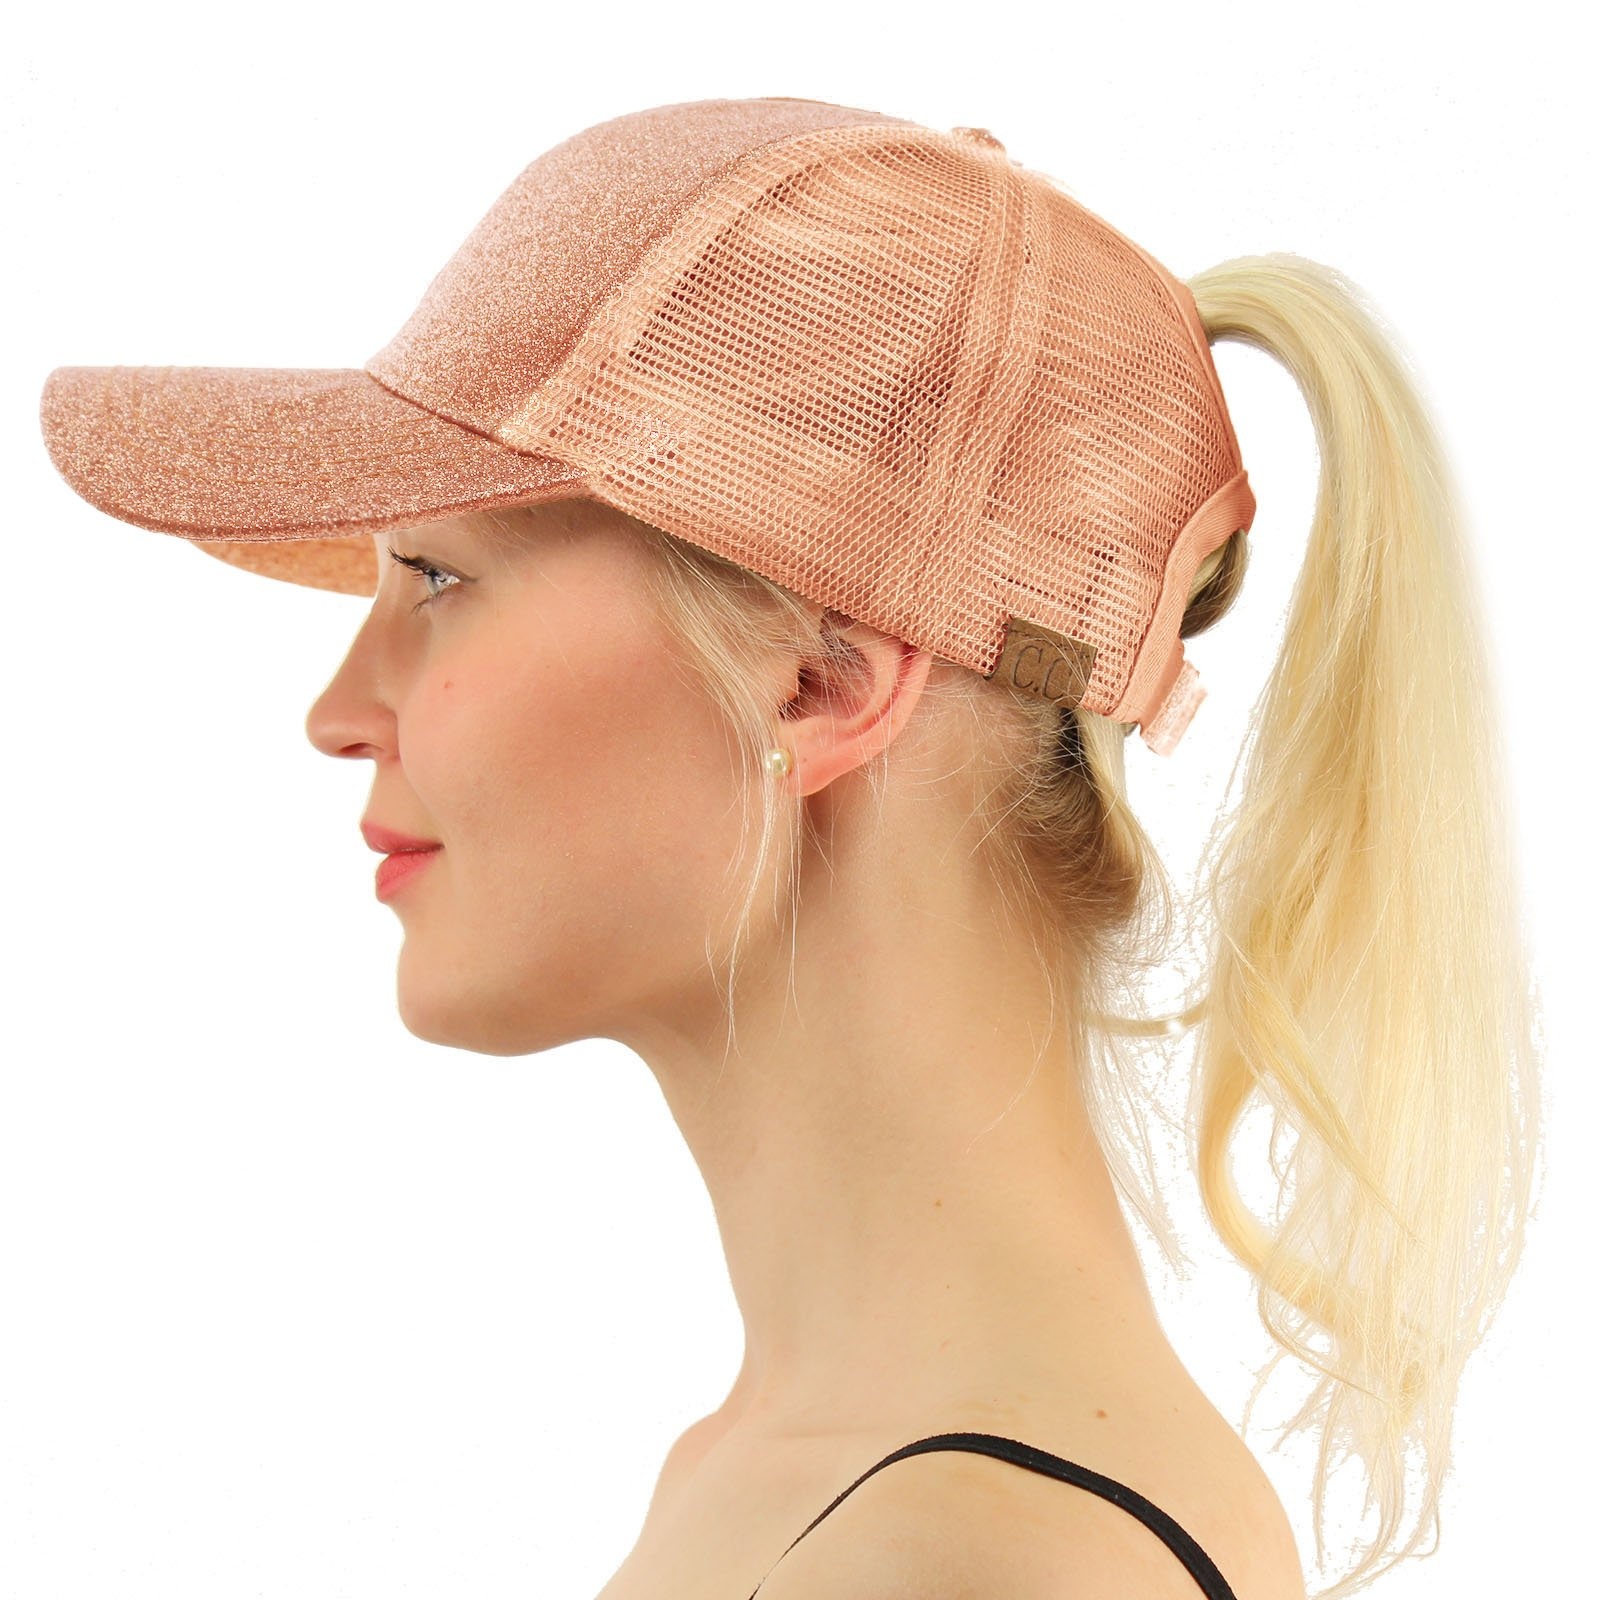 C.C Ponytail Messy Buns Trucker Ponycaps Plain Baseball Visor Cap Dad Hat Glitter Rose Gold